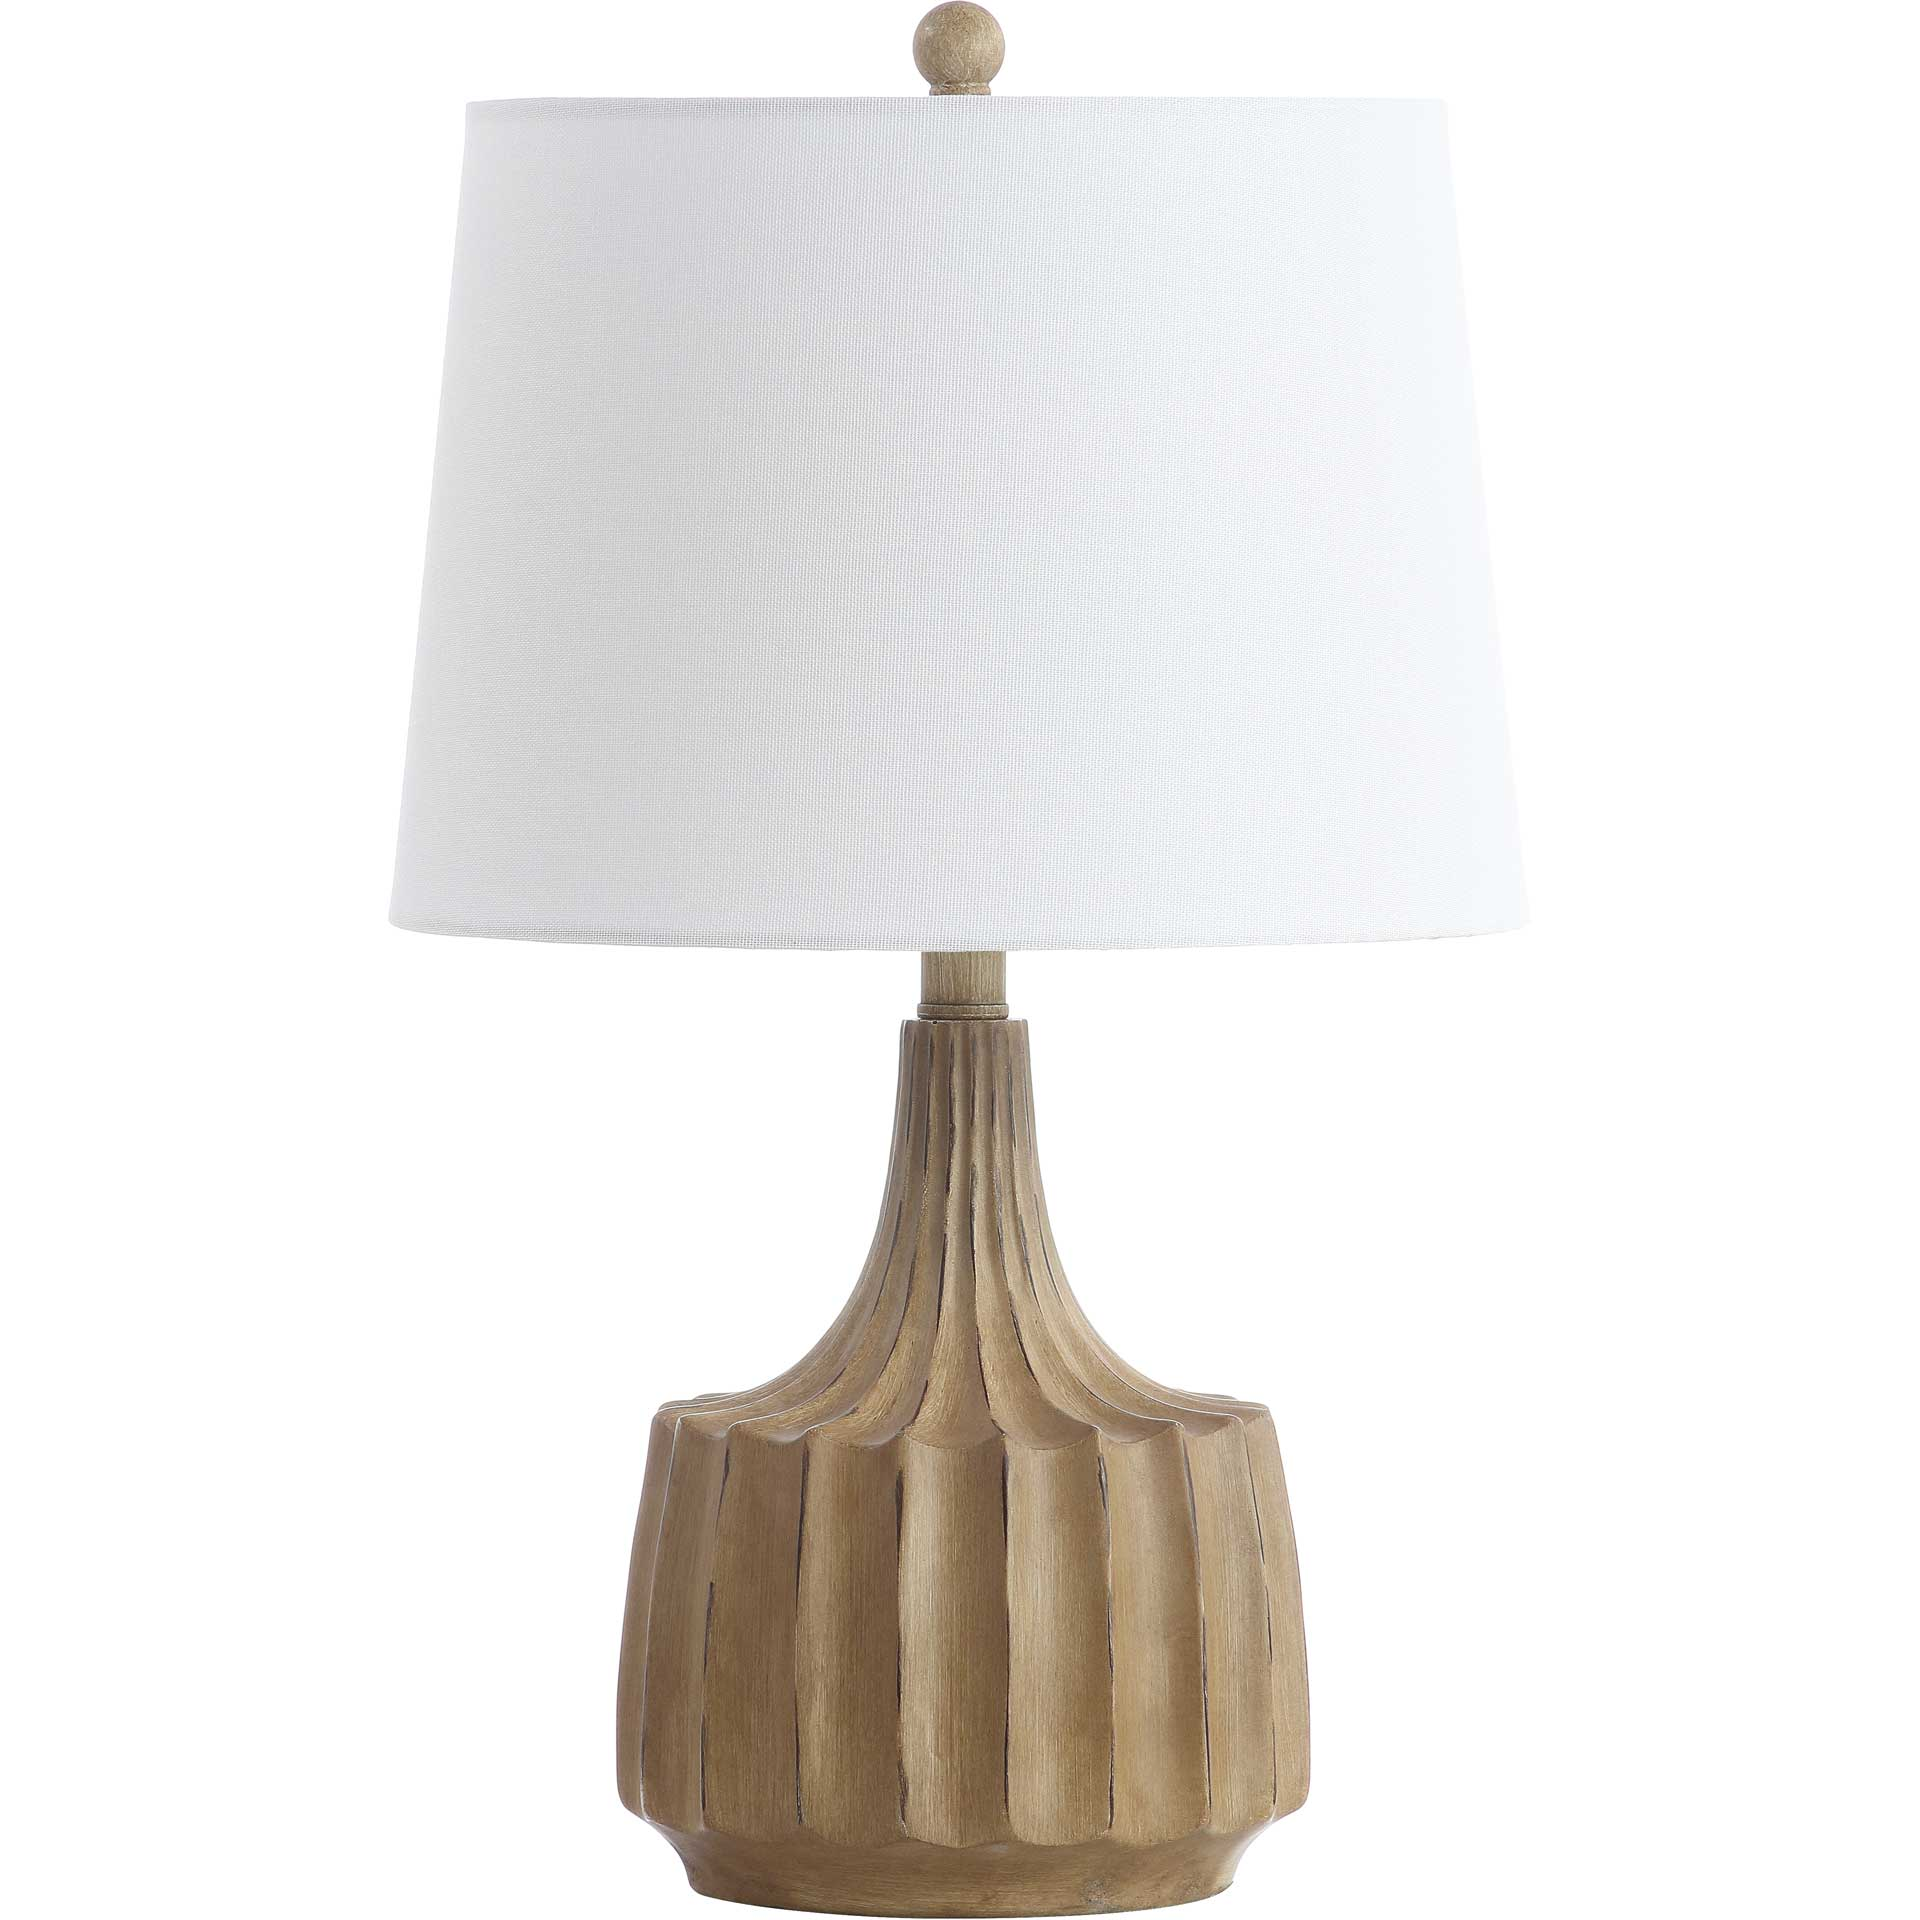 Shanara Table Lamp Wood Finish